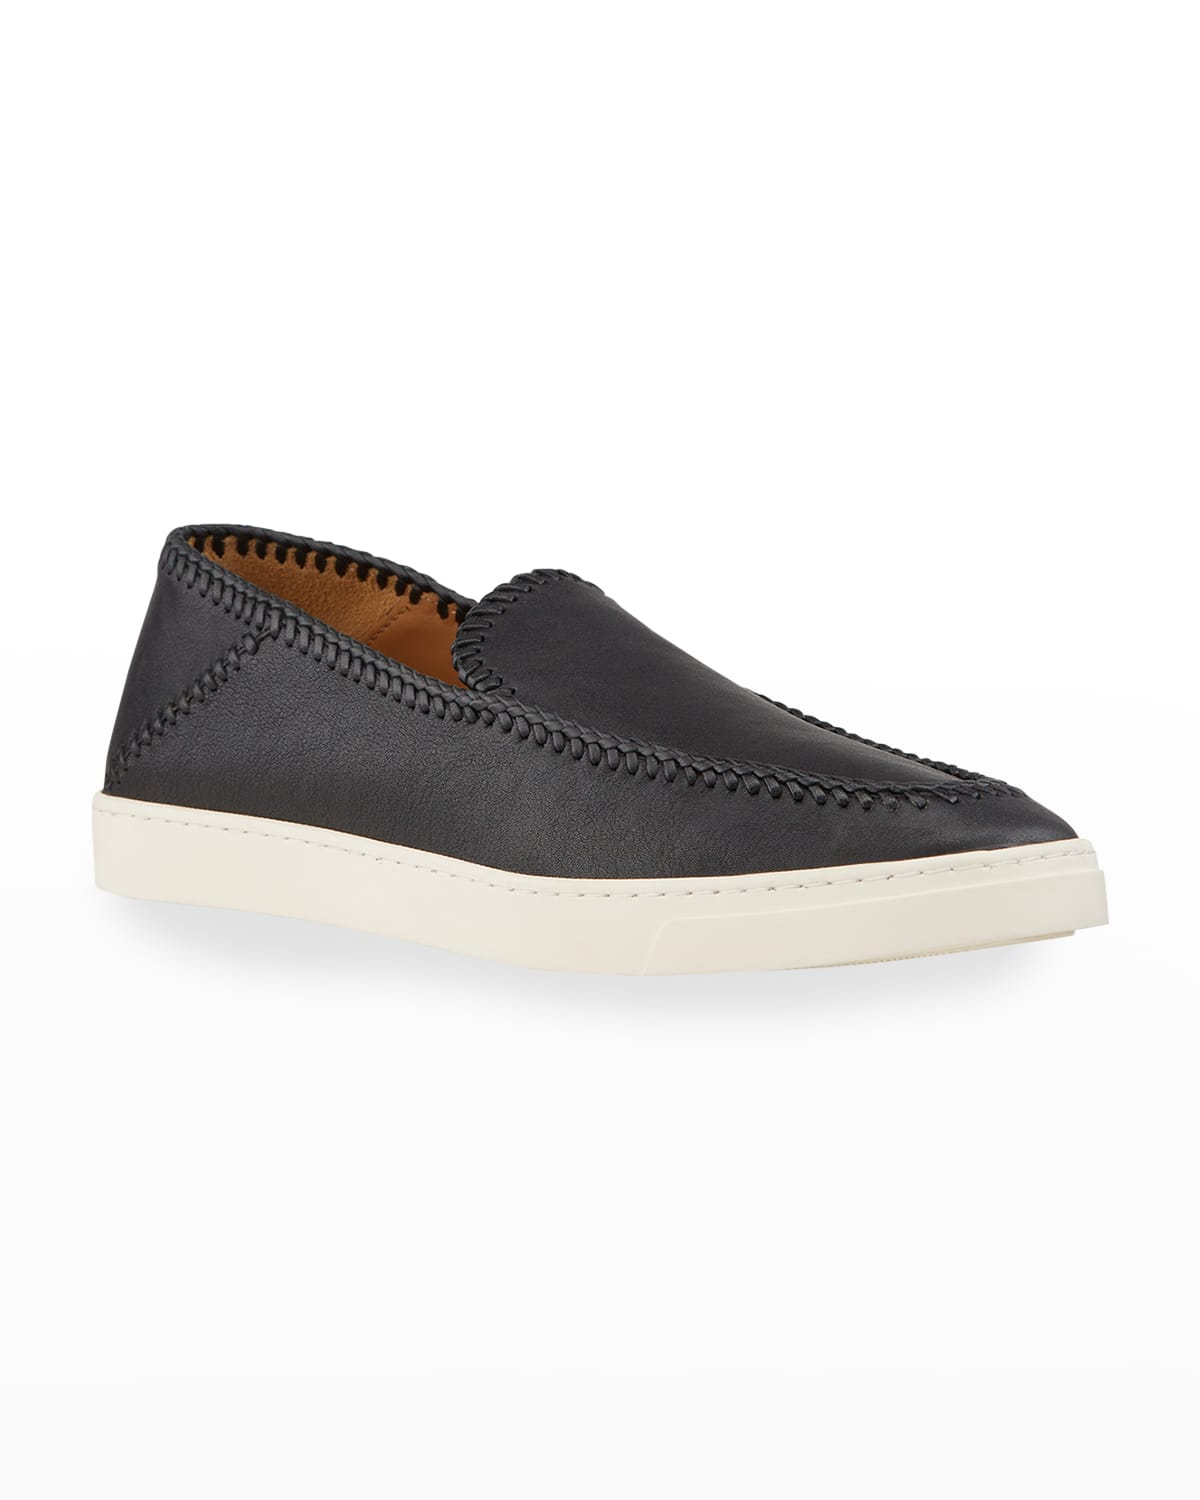 Men's Woven Leather Slip-On Shoes